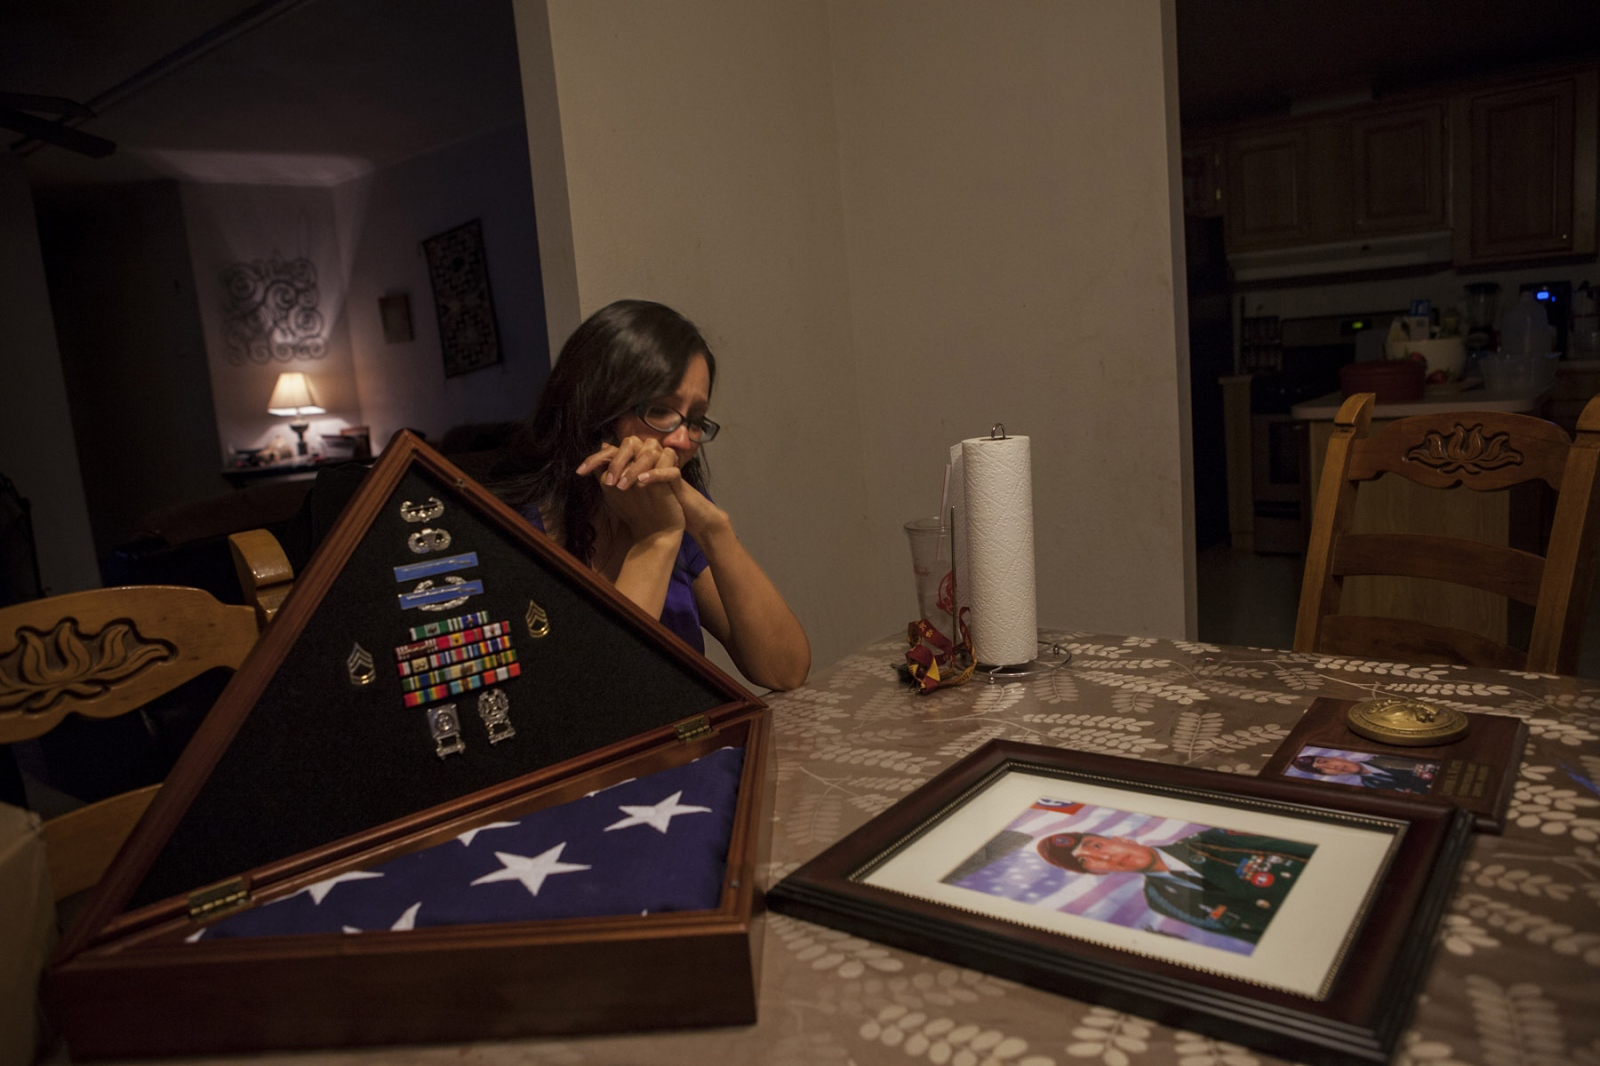 "Latonya ""Tasha"" Johnson, 35, sits at the dining table with the burial flag of her former husband Staff Sergeant Lonnie A. Watts, at their home in Rock Springs, New Mexico. 2014. Mr. Watts was deployed to Afghanistan after the start of the US-led invasion with the 82nd Airborne, an airborne infantry division and was later deployed to Iraq in 2005. Ms. Johnson believes that her husband, whom she met after he returned from Afghanistan, was deeply affected by what he'd experienced in combat there, but refused to seek help or counseling to get diagnosed with PTSD because it was something ""[he] was not proud of."" Mr. Watts turned to alcoholism to deal with the trauma and according to Ms. Johnson, always needed an adrenaline rush. Ms. Johnson says she wishes her husband could have sought counseling so that he would be alive today to help her raise their five children."